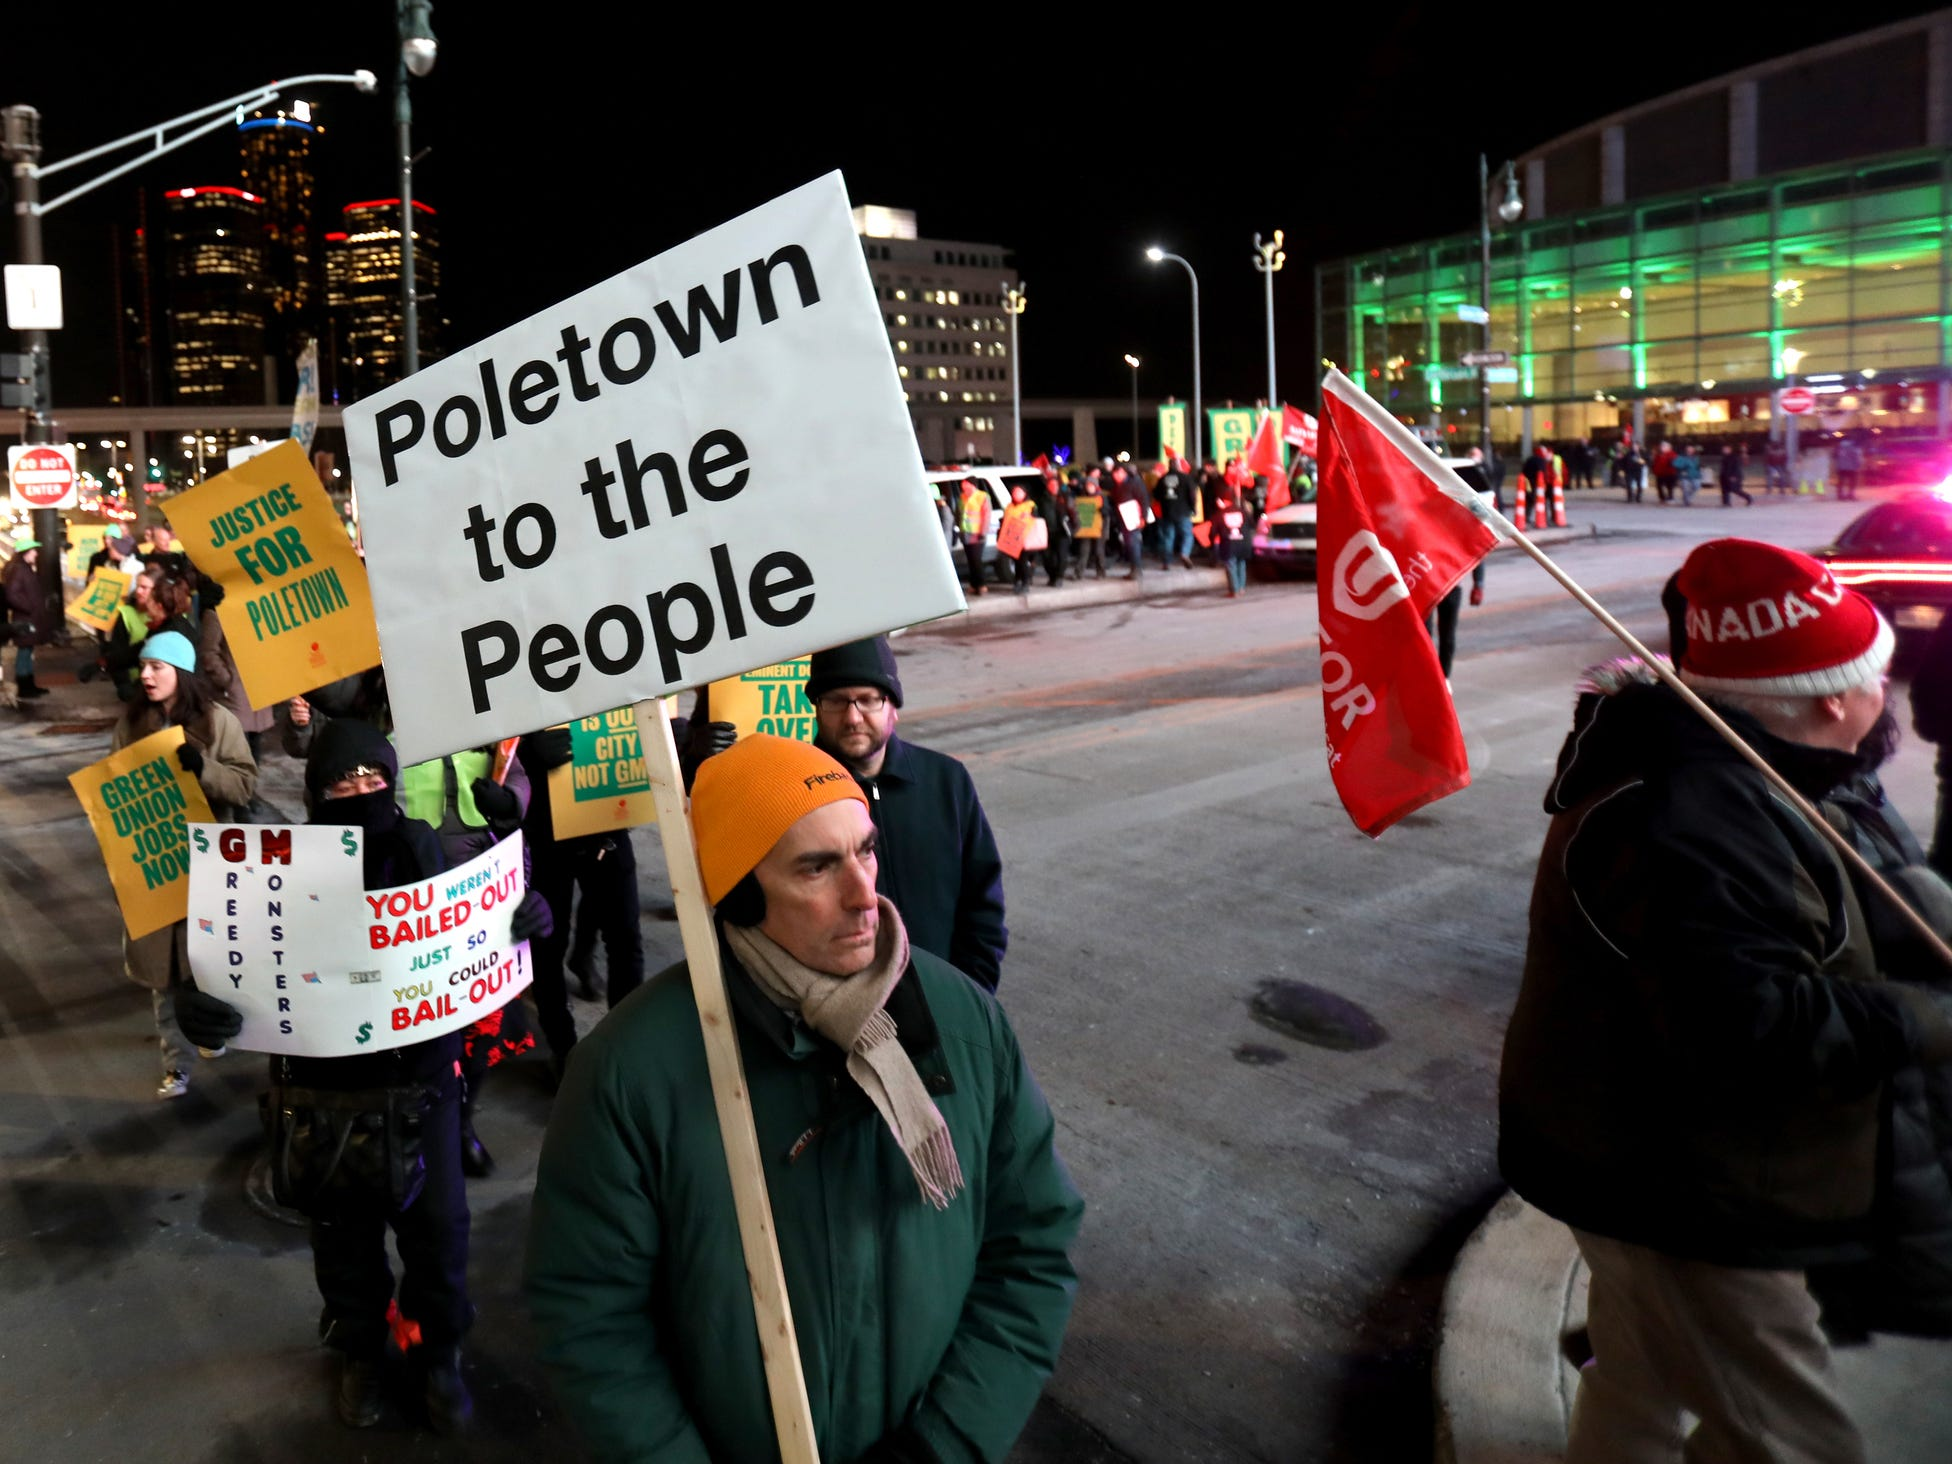 Protestors against General Motors march in front of Cobo Center during the 2019 North American International Auto Show Charity Preview on Friday, January 18, 2019.